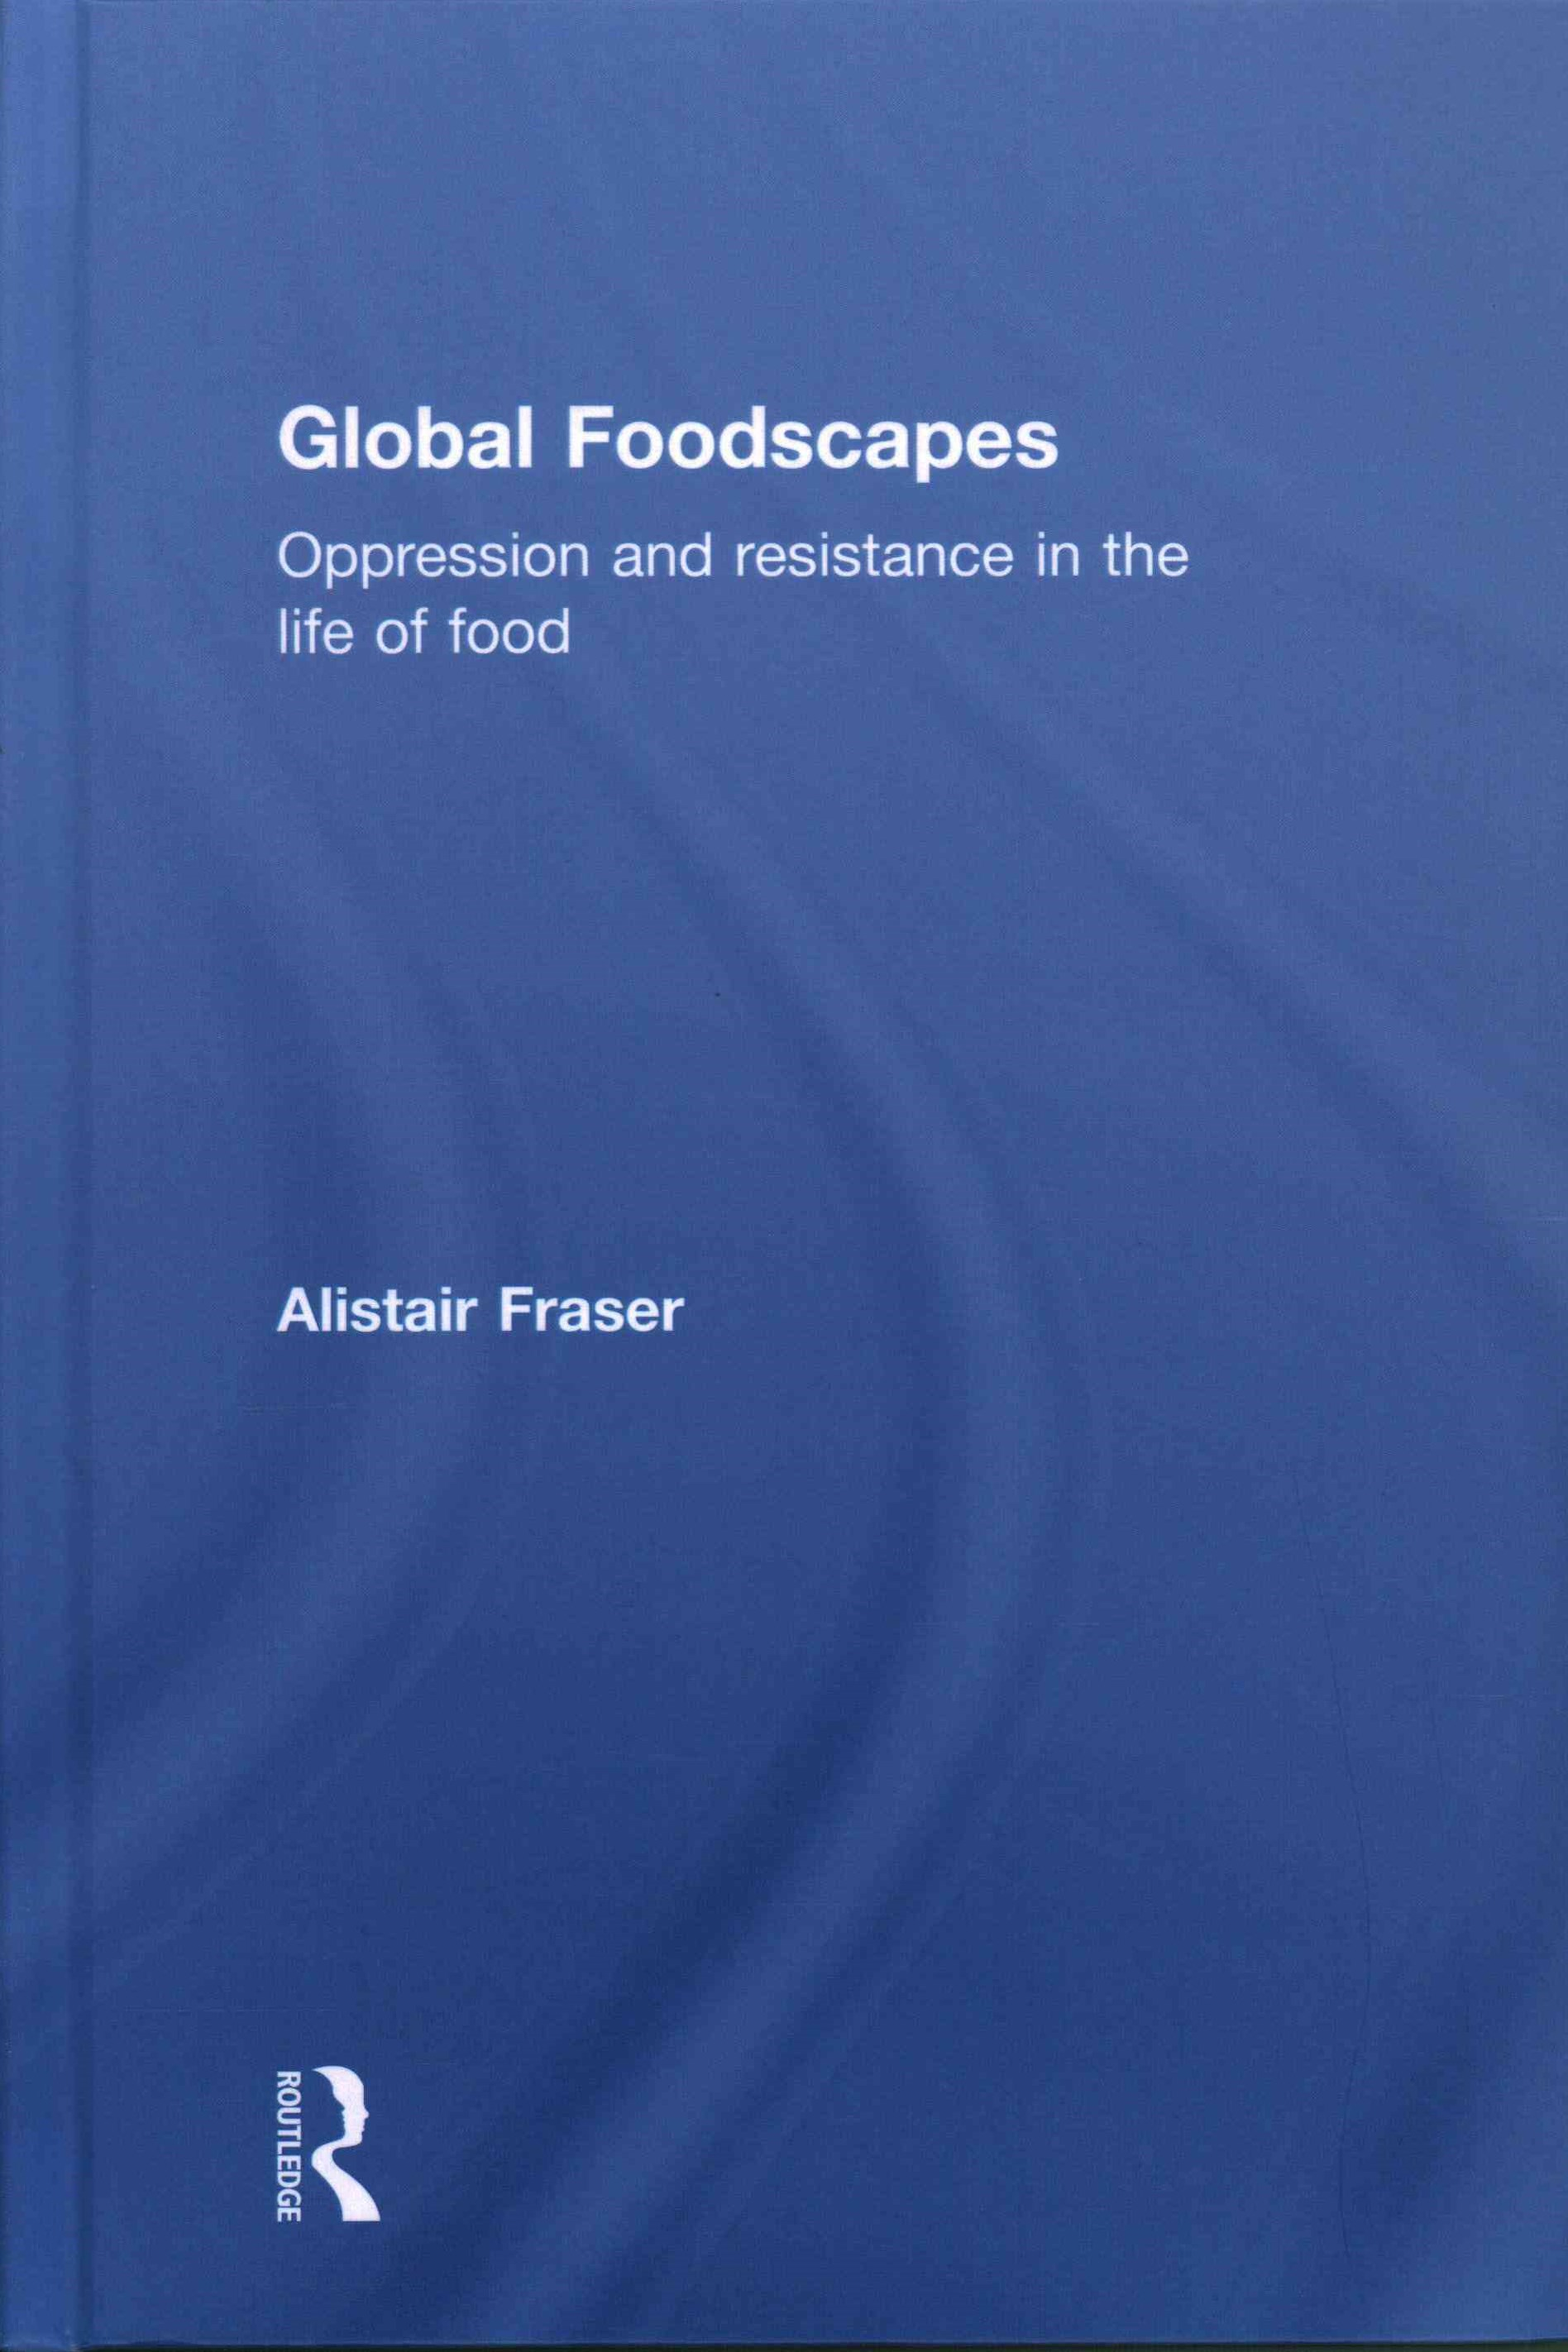 Global Foodscapes